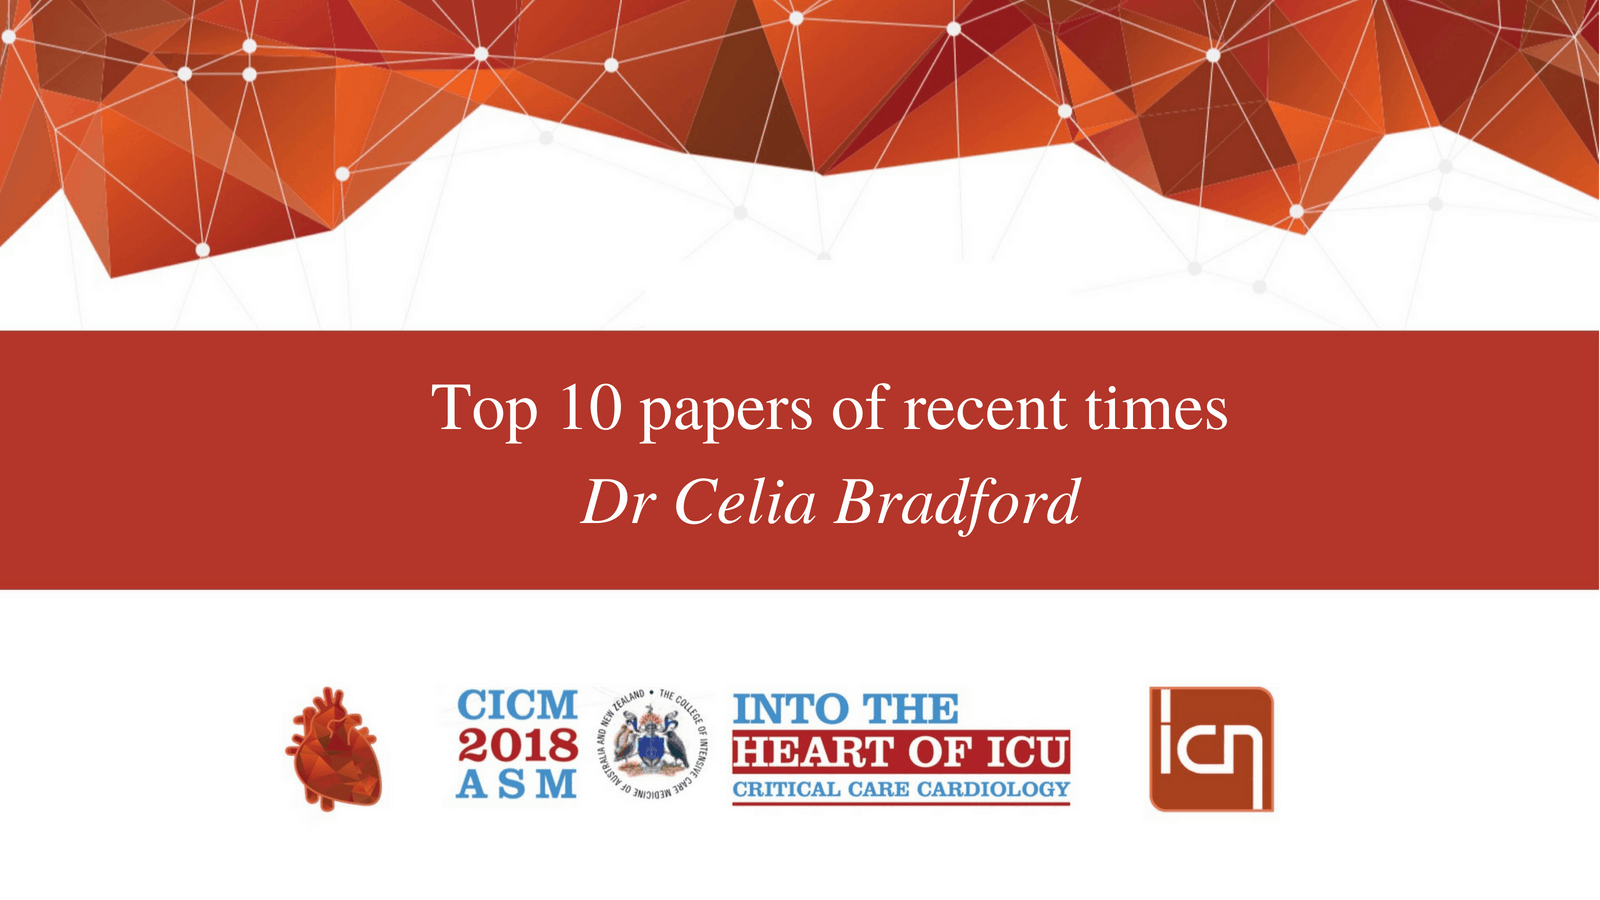 Top 10 papers of recent times